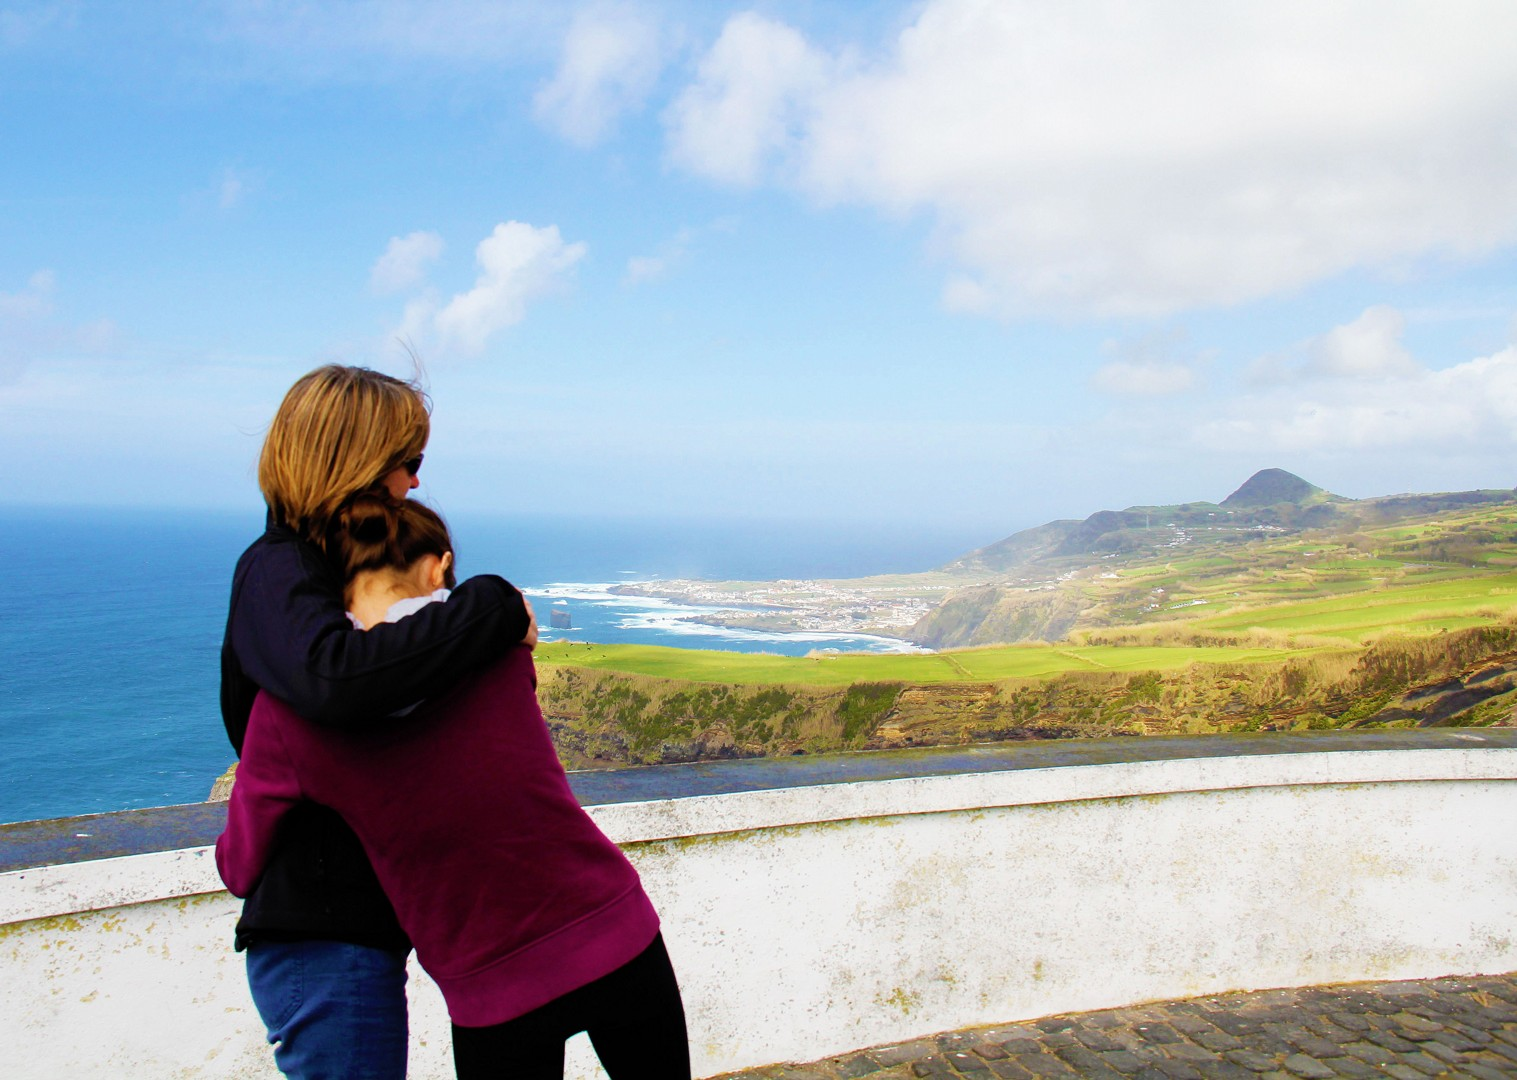 _Holiday.559.6636.jpg - The Azores - Azores Adventures - Guided Family Cycling Holiday - Family Cycling